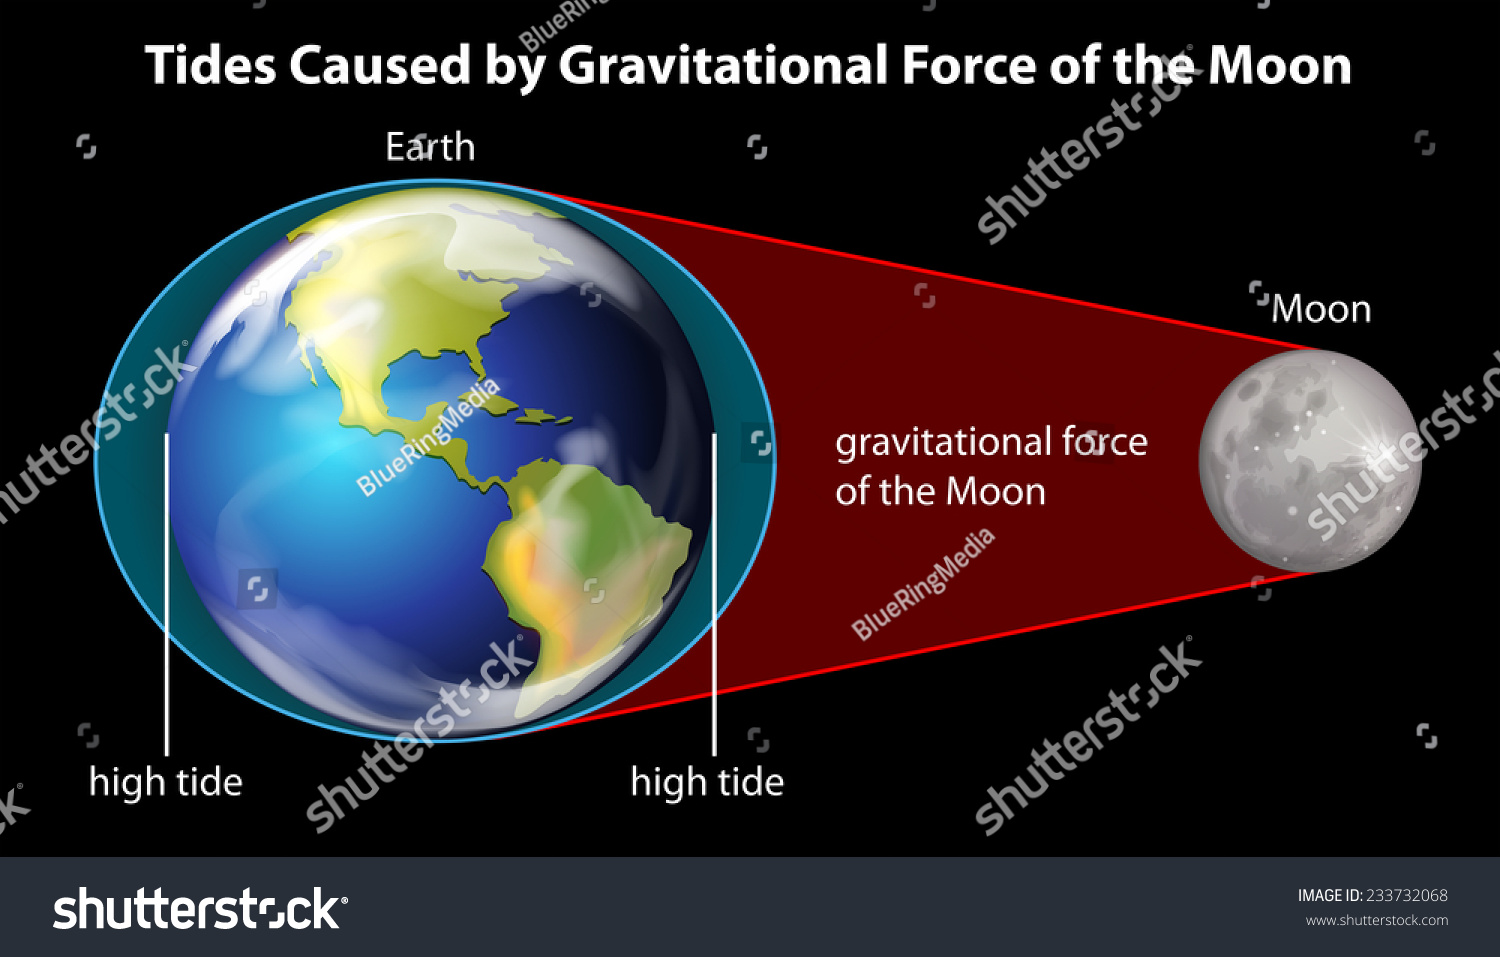 Gravitational Pull of the Planets - Planet Facts